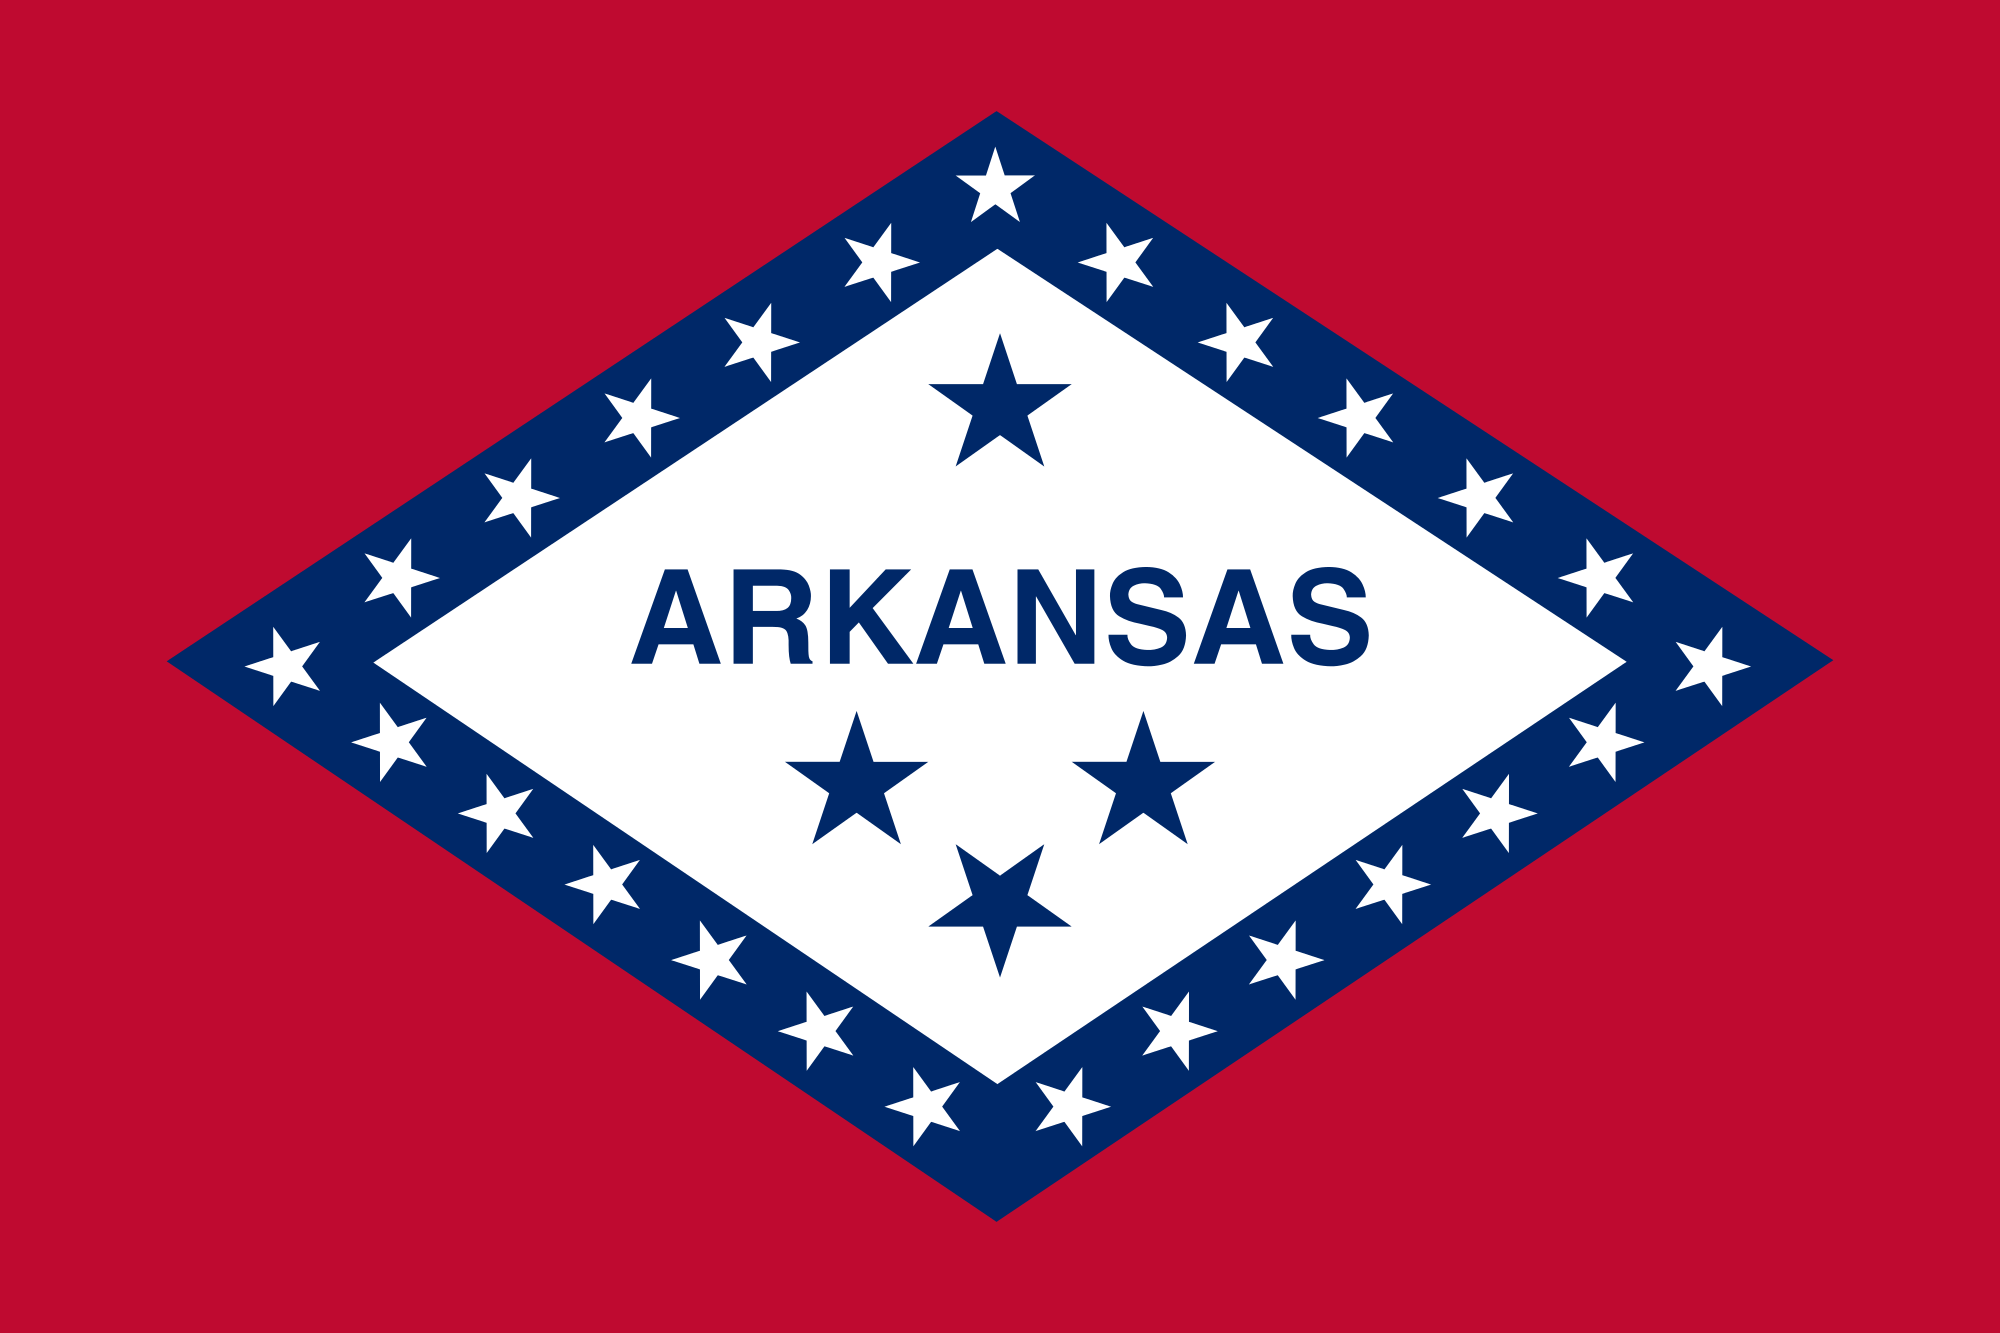 Arkansas State Holidays and Info. from Holidays and Observances